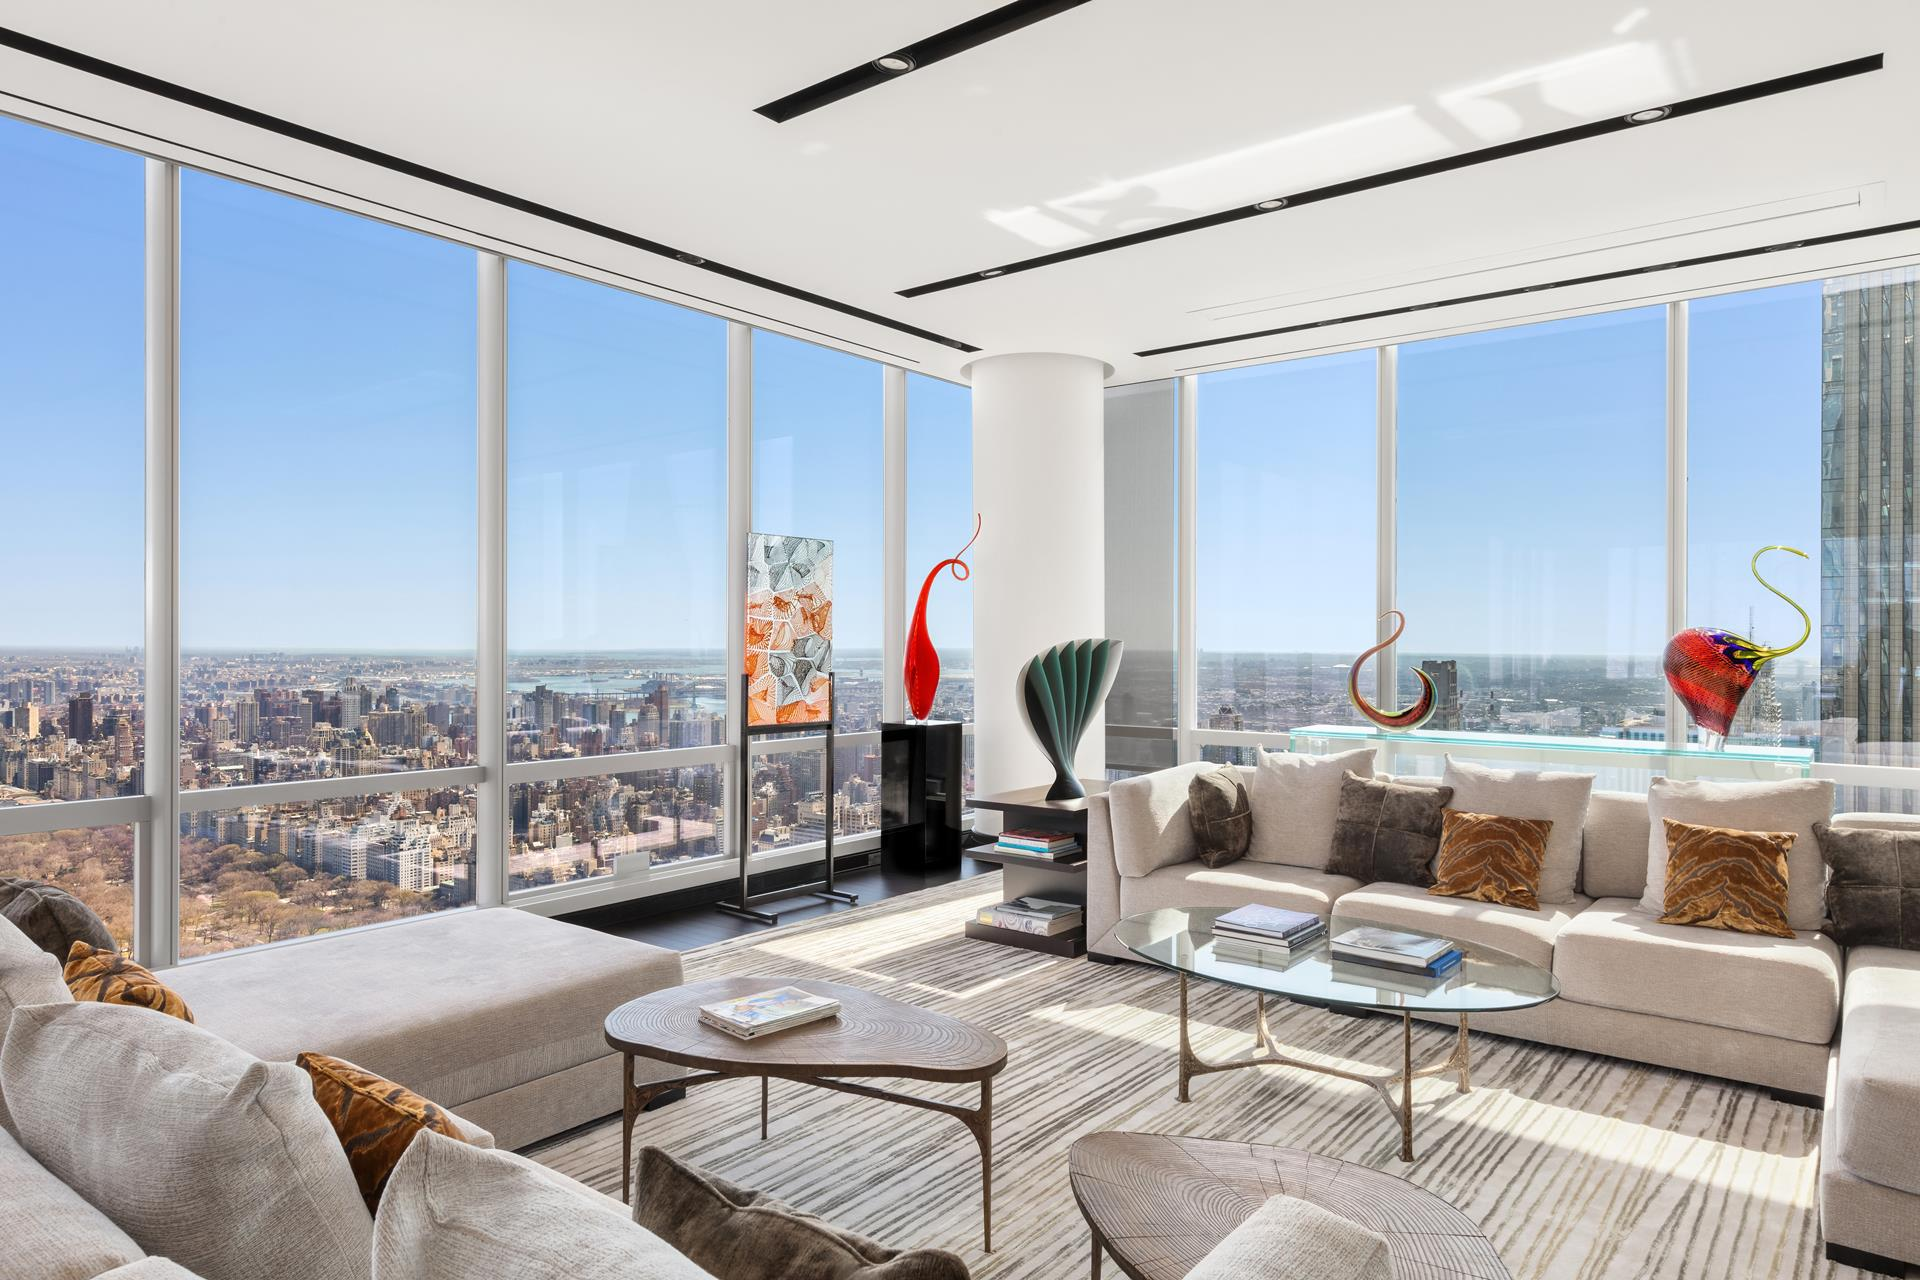 Soaring high above Midtown, comprising the entire 81st floor, this trophy penthouse residence at the premier One57 condominium tower is a masterpiece of design and luxury. From your sprawling private oasis in the sky, you will enjoy spectacular panoramas   from every room & vantage point, with inpouring natural light all day long. Walls of glass wrap the entire home, capturing unobstructed expanses of Central Park, the Hudson River, East River & dramatic cityscapes.    Offered for those with uncompromising taste, this 4 bedroom, 4.5 bath jewel exudes elegance with the finest fit & finish, and dimensions of grand proportion. Upscale details abound throughout including museum-grade lighting; abundant wall space for   art; soft-close pocket doors for uninterrupted walls & pathways; concealed motorized solar & blackout shades; heated stone bathroom floors; a Smart Home which includes a Crestron system for lighting, AV, shades, security & HVAC control; even a safe room with   ballistic board lining the walls & door.        A private elevator landing opens to a gracious entry foyer, spilling into a glamorous great room for entertaining. Surrounding you are incredible vistas from a generous open layout that affords versatile seating arrangements. Unique concealed ceiling-mounted   TV screens with high-quality projectors in the living/dining areas thoughtfully maintain the sweeping views of Central Park & NYC. The exquisite chef's kitchen is beyond compare, styled with custom cabinetry, top-of-the-line appliances, a custom hand-made   ceiling-hung lighted pot rock & sunny breakfast room overlooking the Hudson.    A long gallery hall proceeds to the sleeping quarters offering 3 spacious bedroom suites with high-end baths & ample closets. A separate sitting room/office niche is also nearby with wonderful views. Past the laundry room, in its own secluded wing, sits the   stunning primary bedroom suite for the ultimate pampered experience. An enormous dressing room with custom 